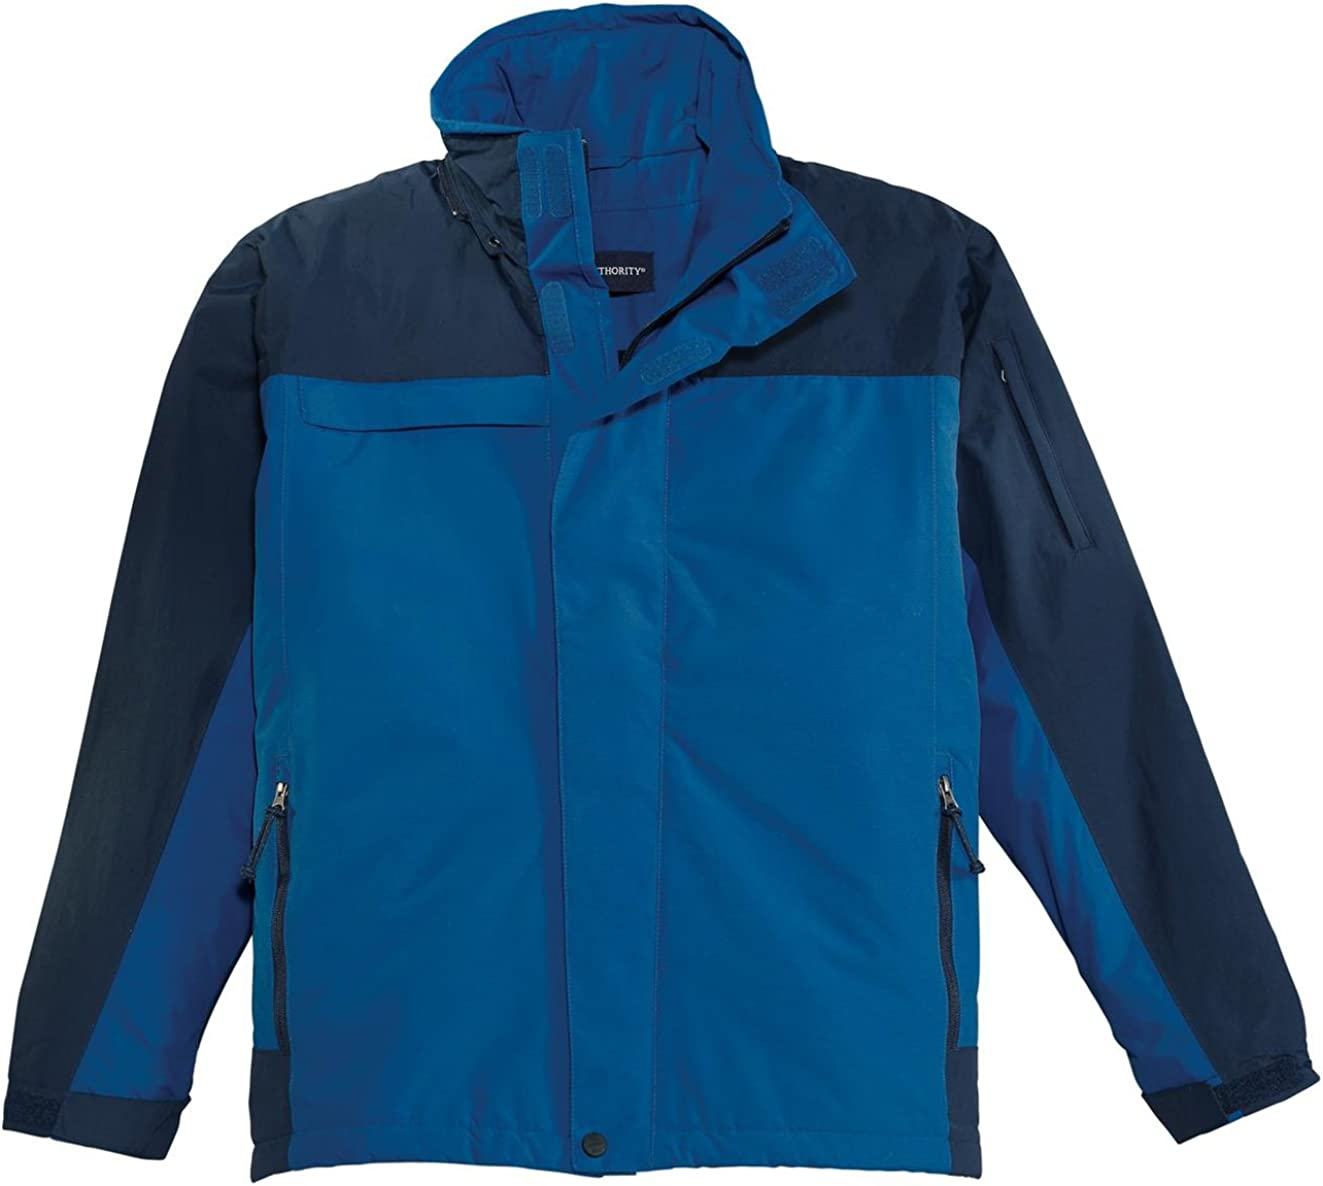 Port Authority Nootka Jacket (J792) Available in 6 Colors